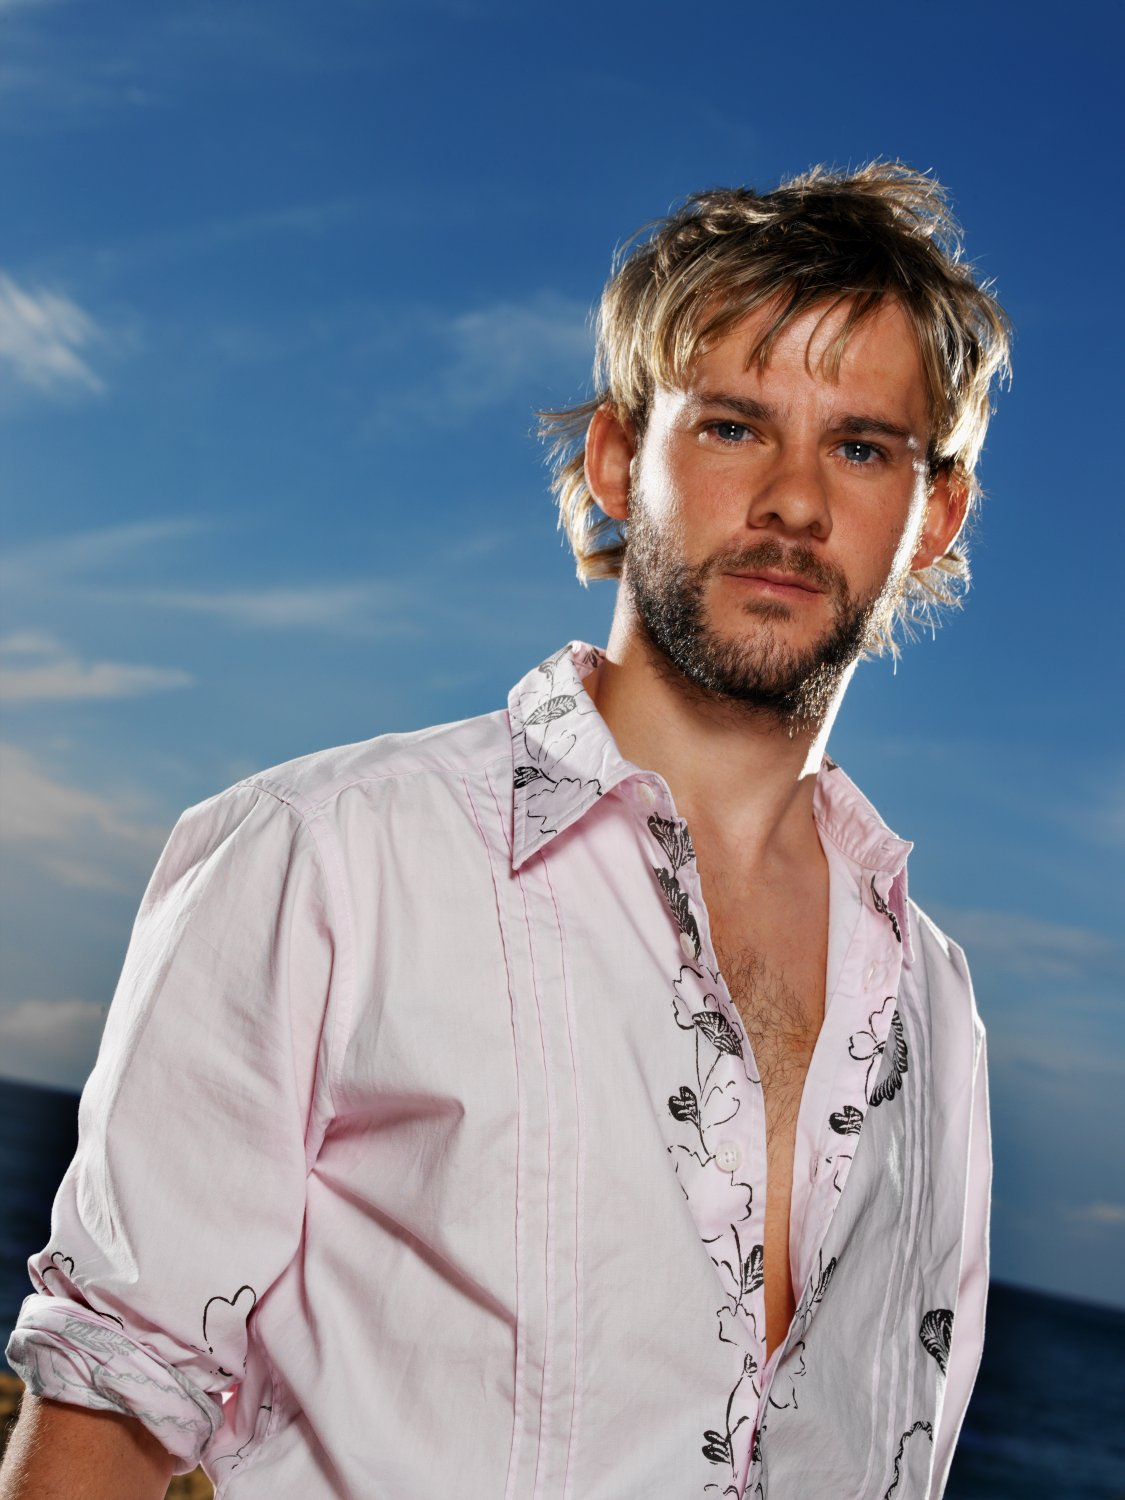 dominic monaghan lord of the rings wiki